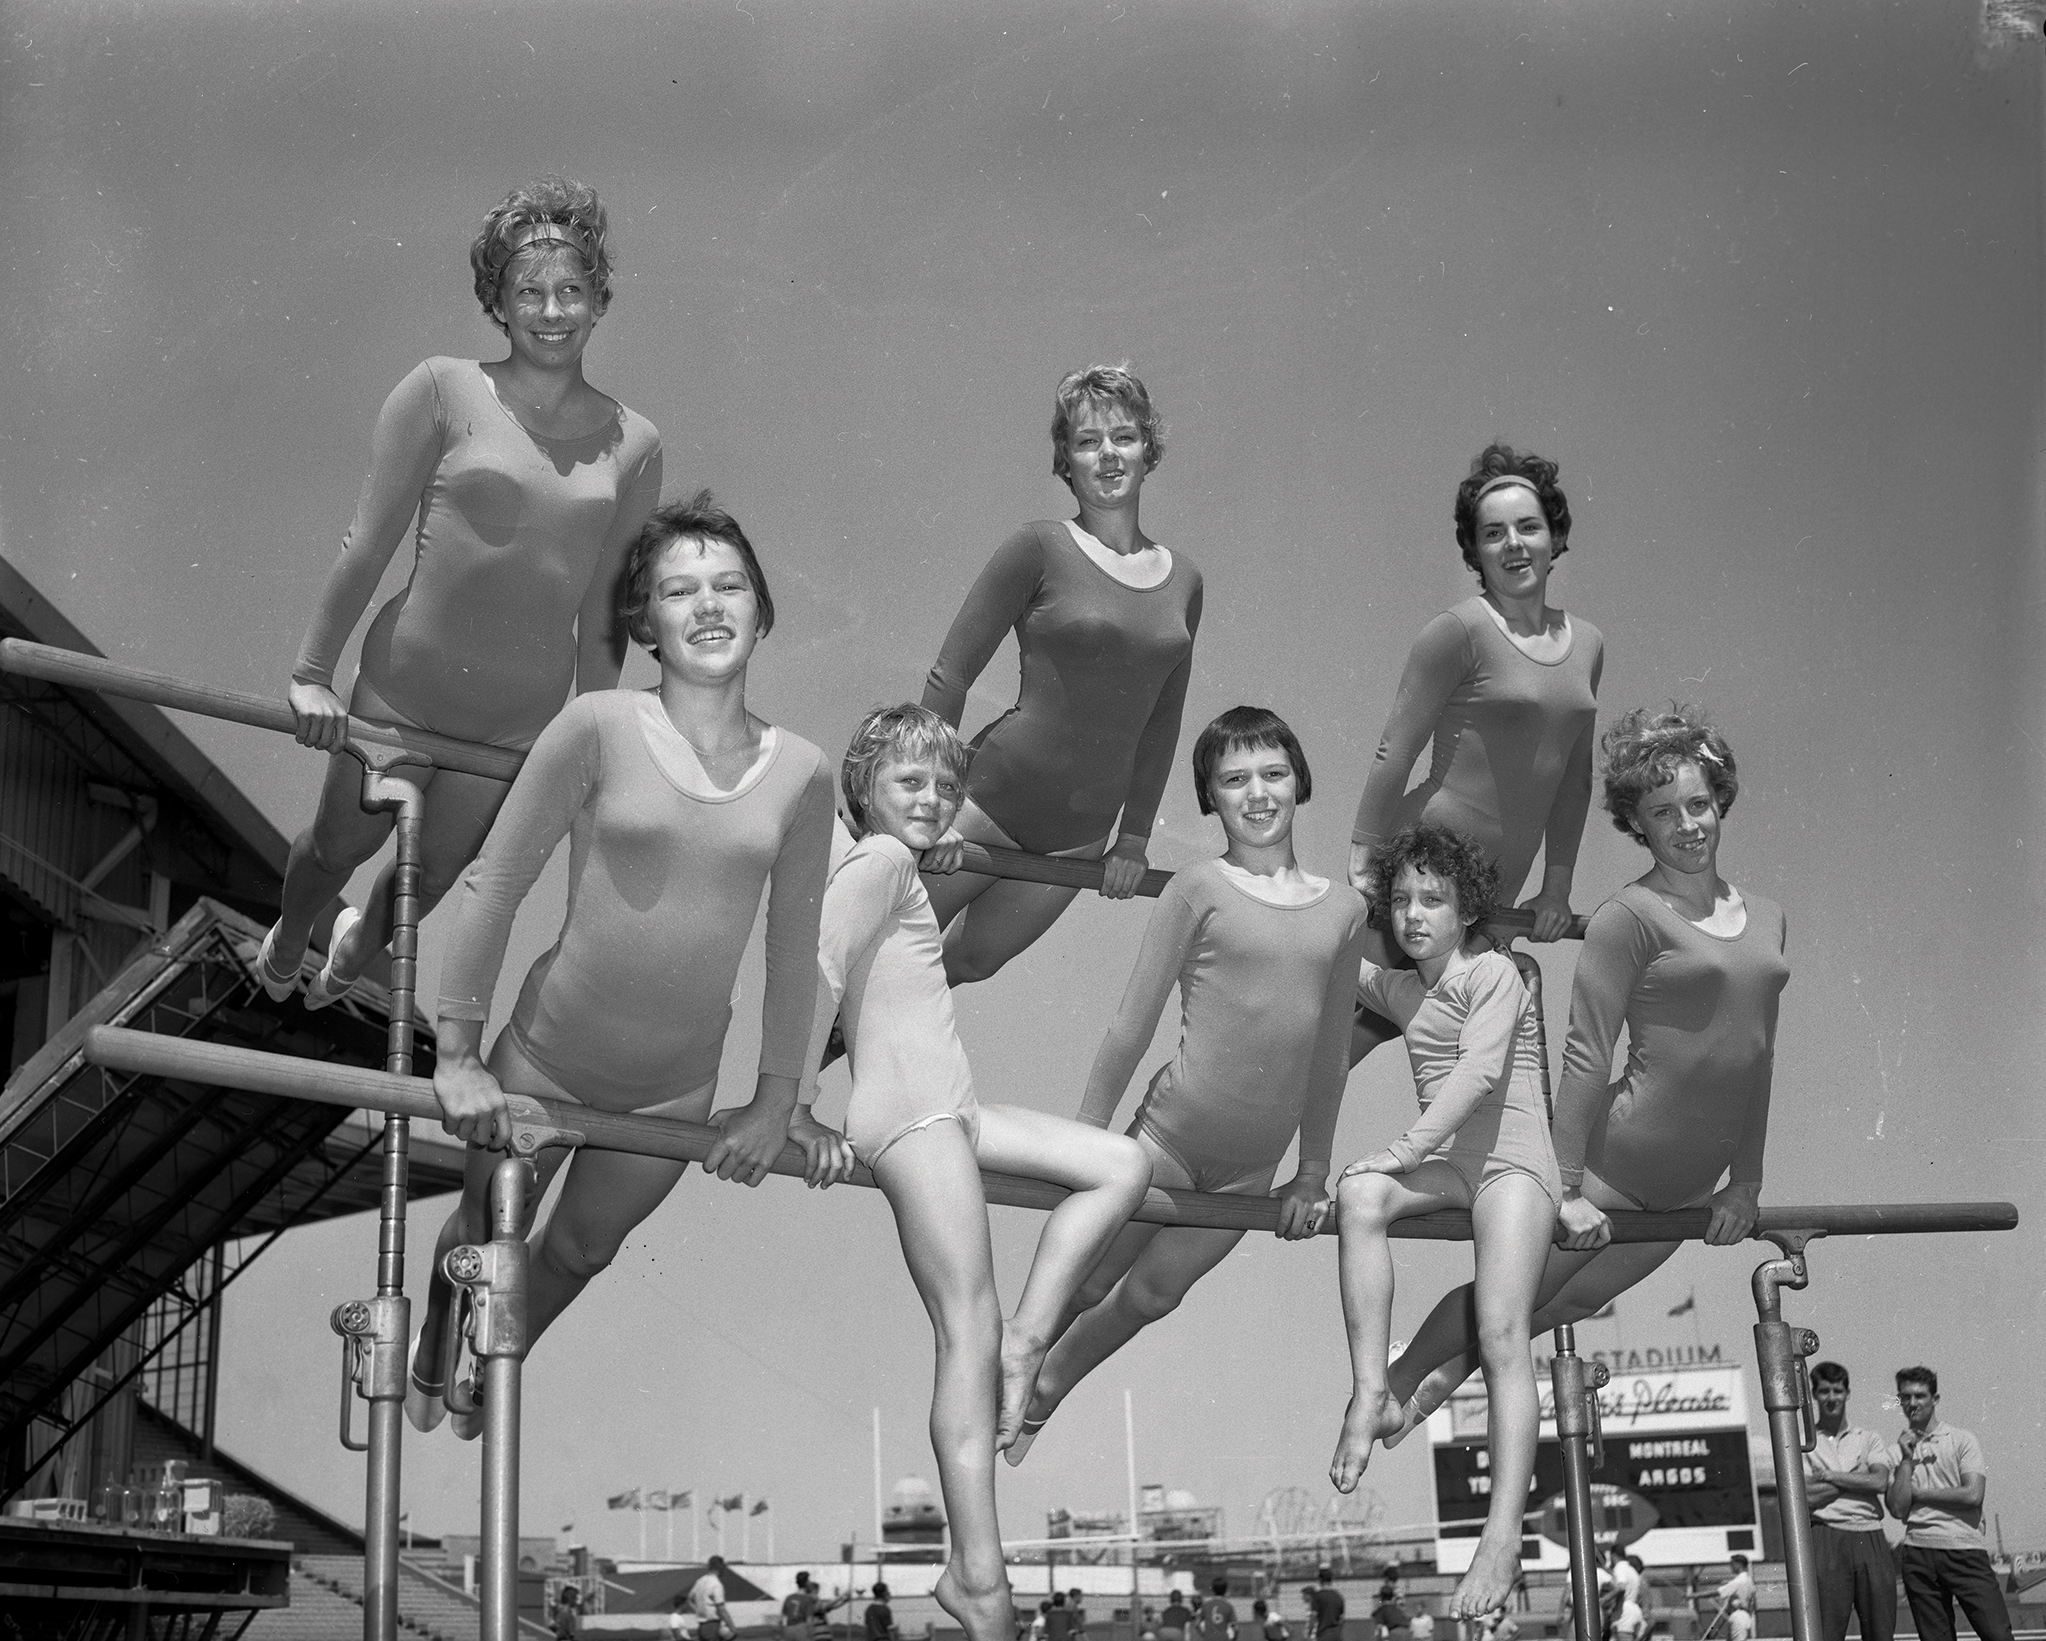 Balancing Act at the Grandstand, 1962. Canadian National Exhibition Archives, MG5-F771-I1. Courtesy of the CNEA